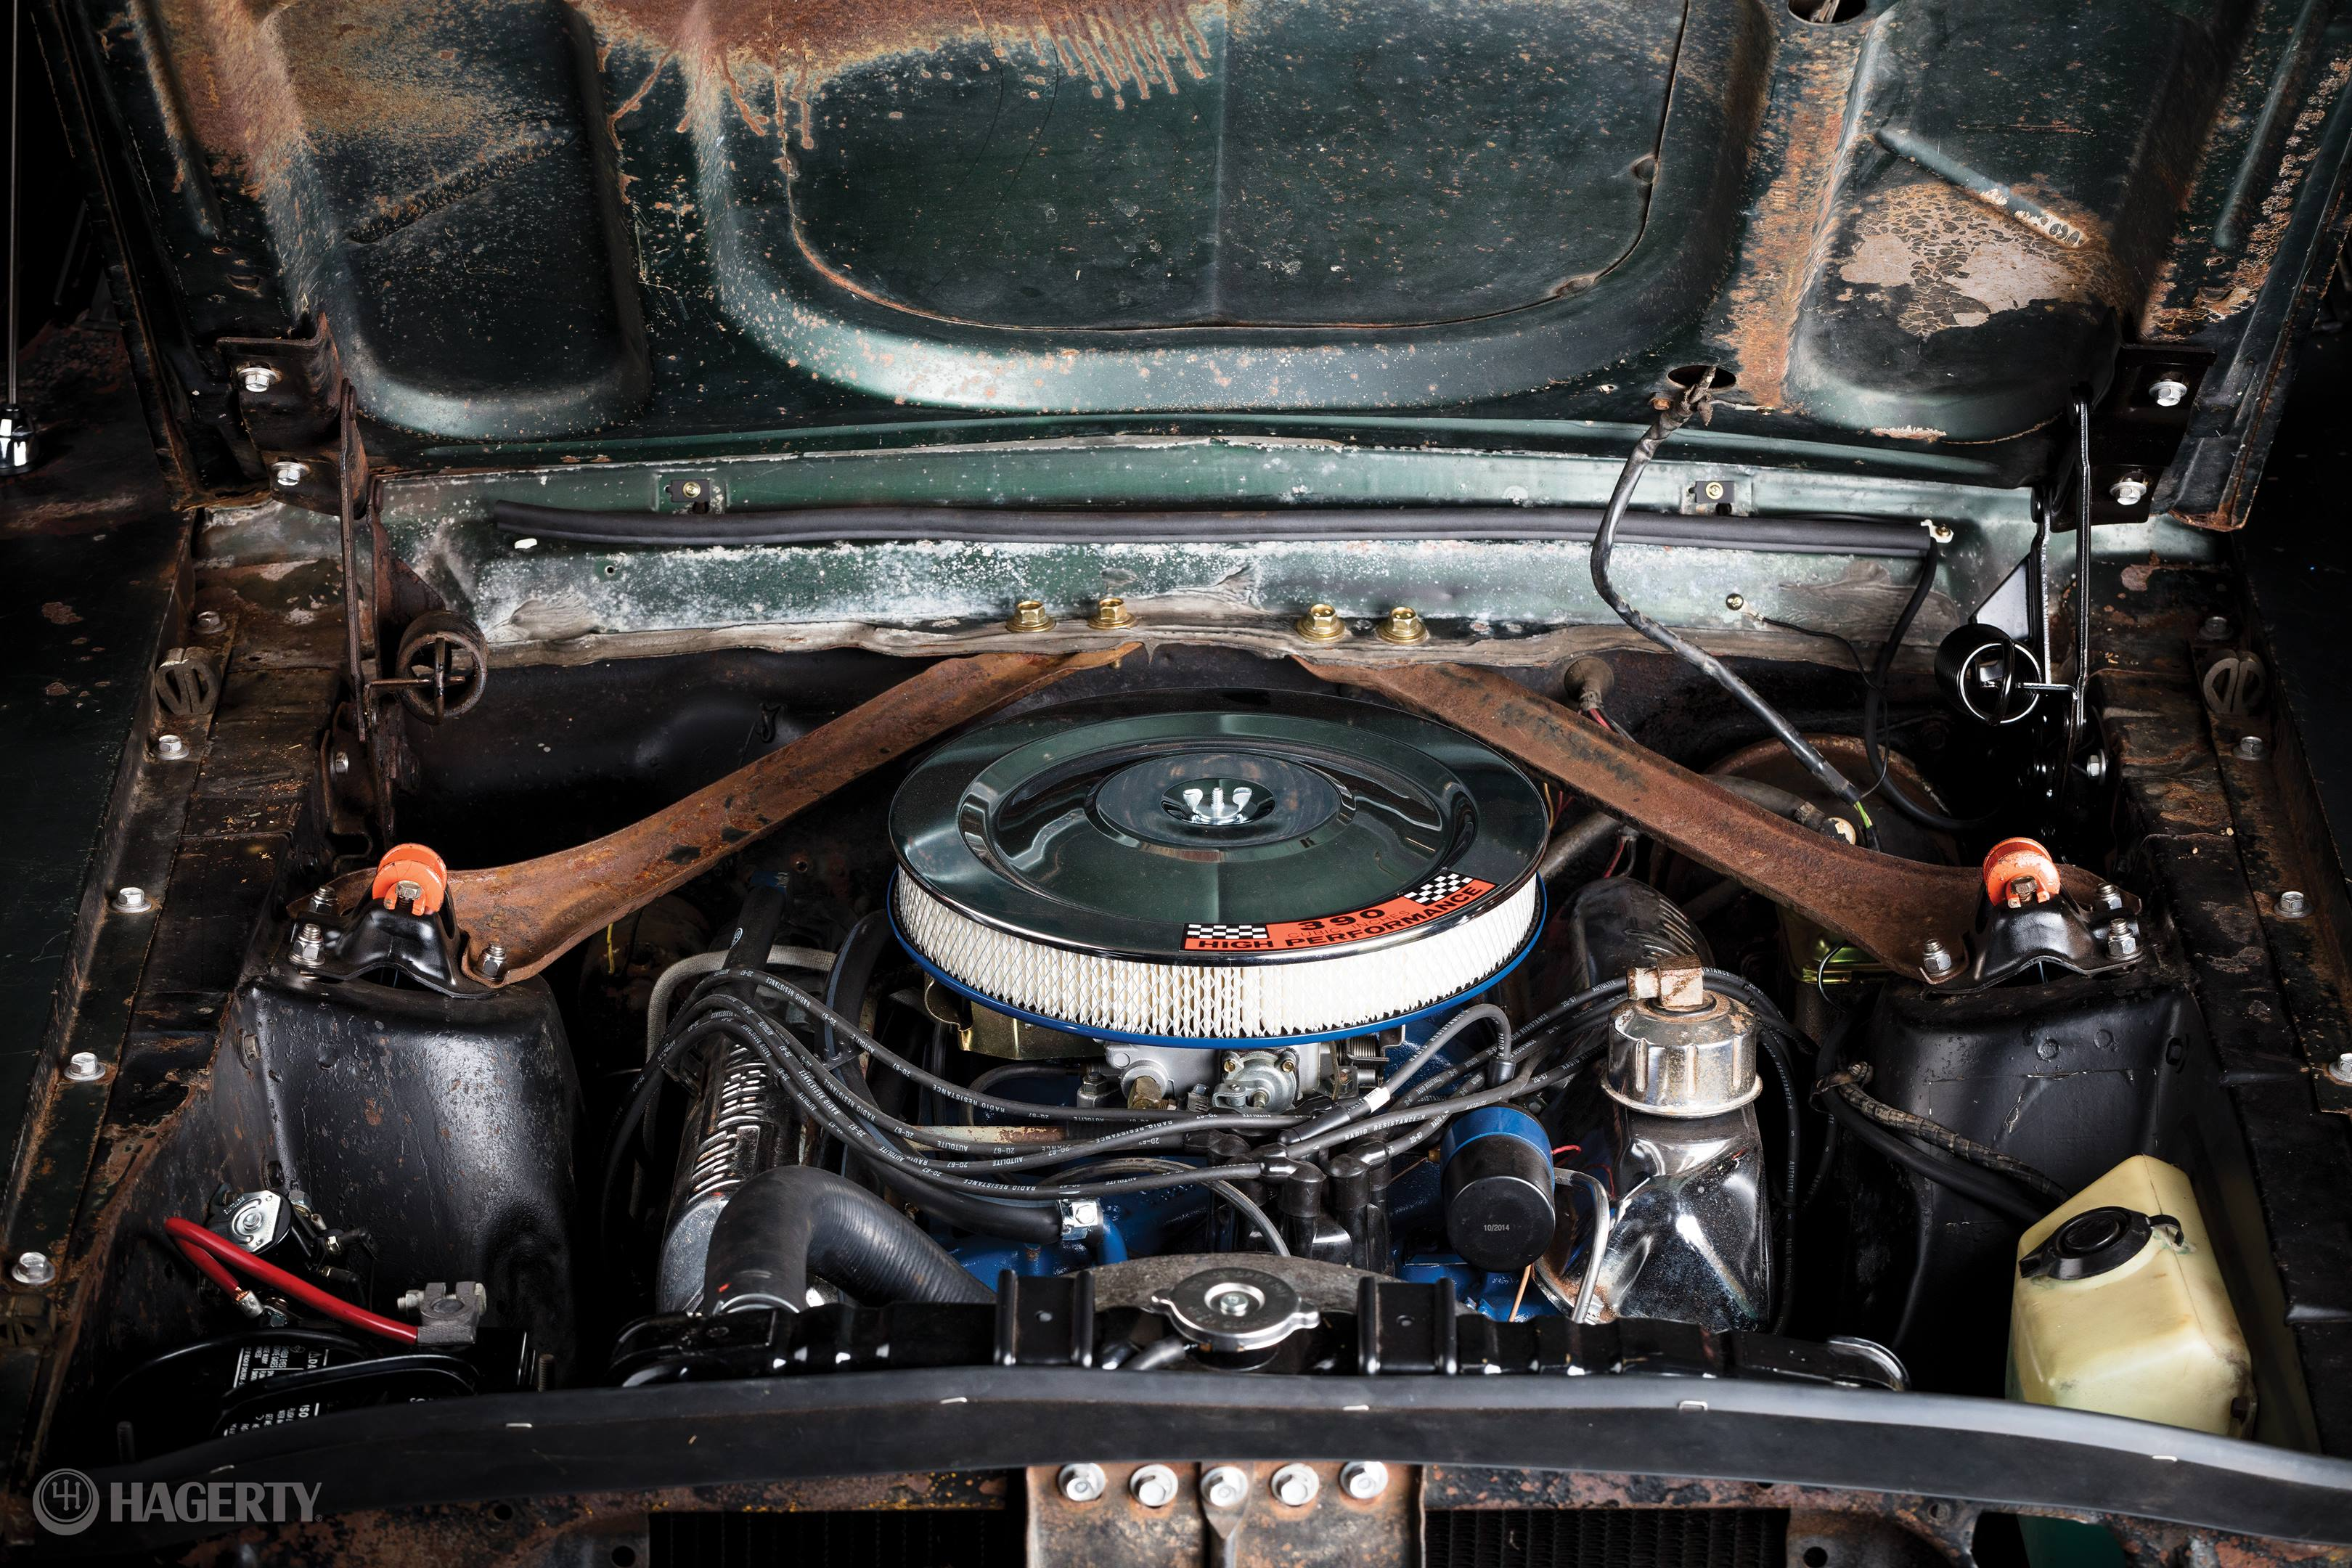 For the film, racer and mechanic Max Balchowsky tweaked the 390-cubic-inch Ford V-8.